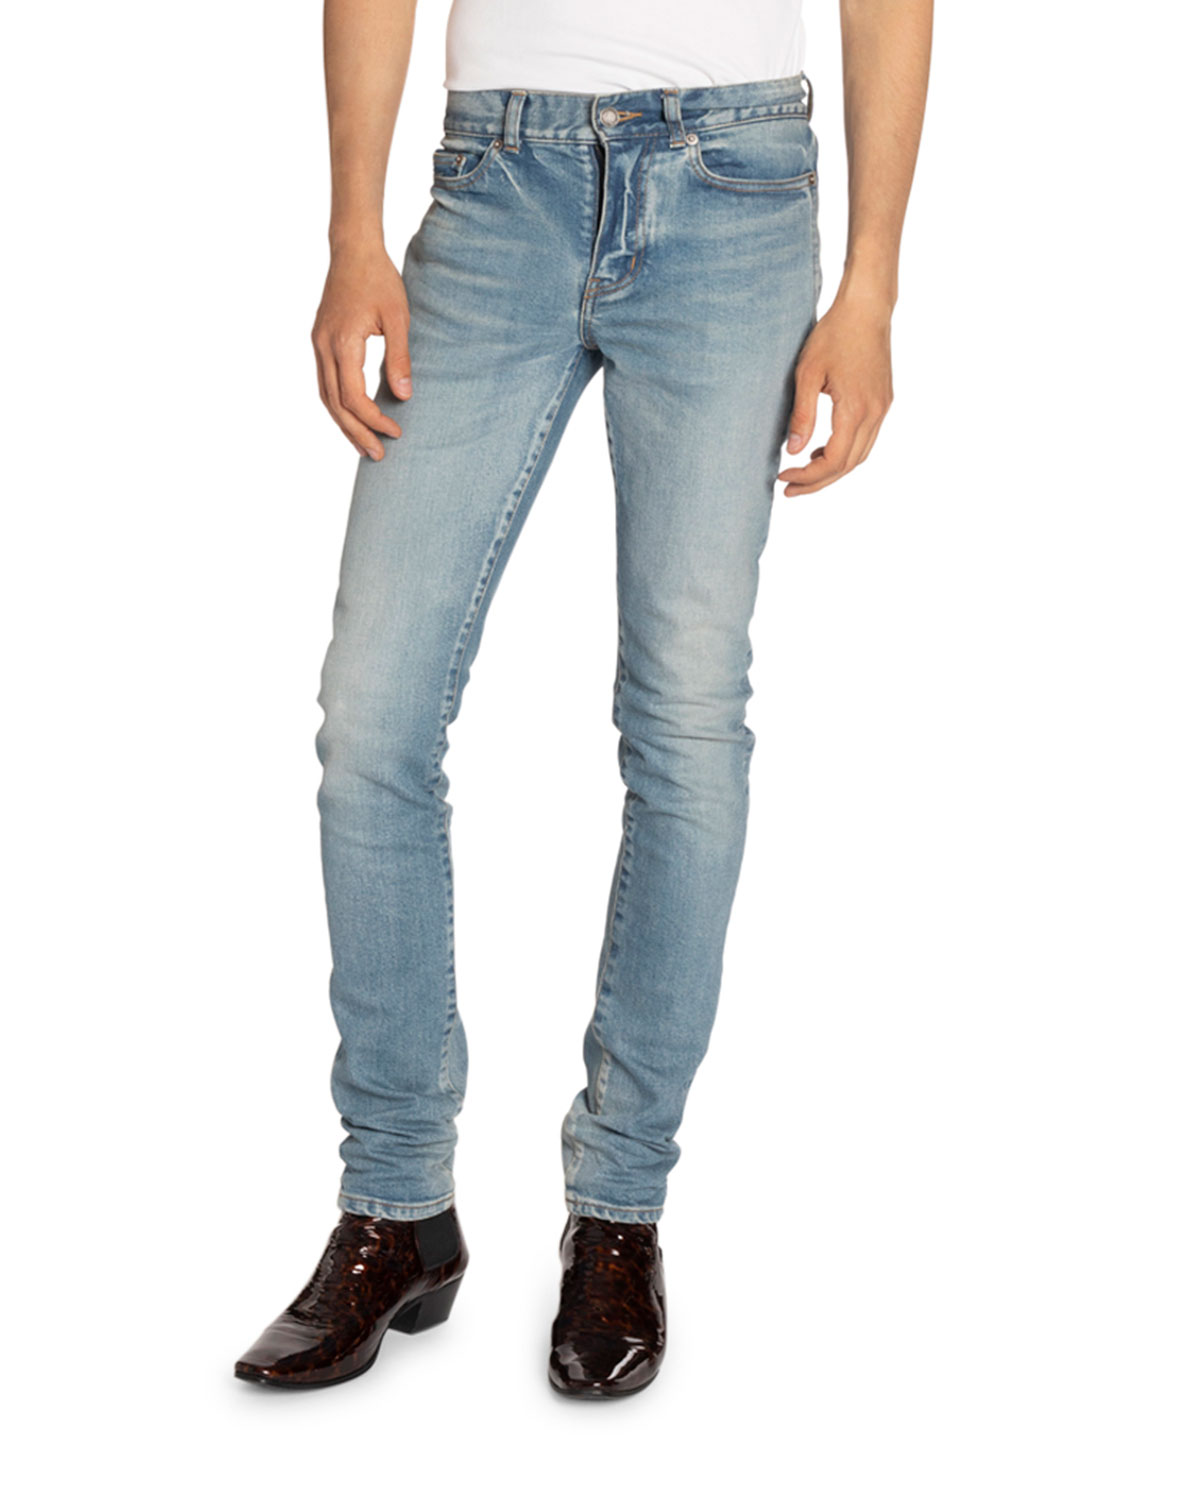 Saint Laurent Men's Low-Rise Skinny Stretch Jeans